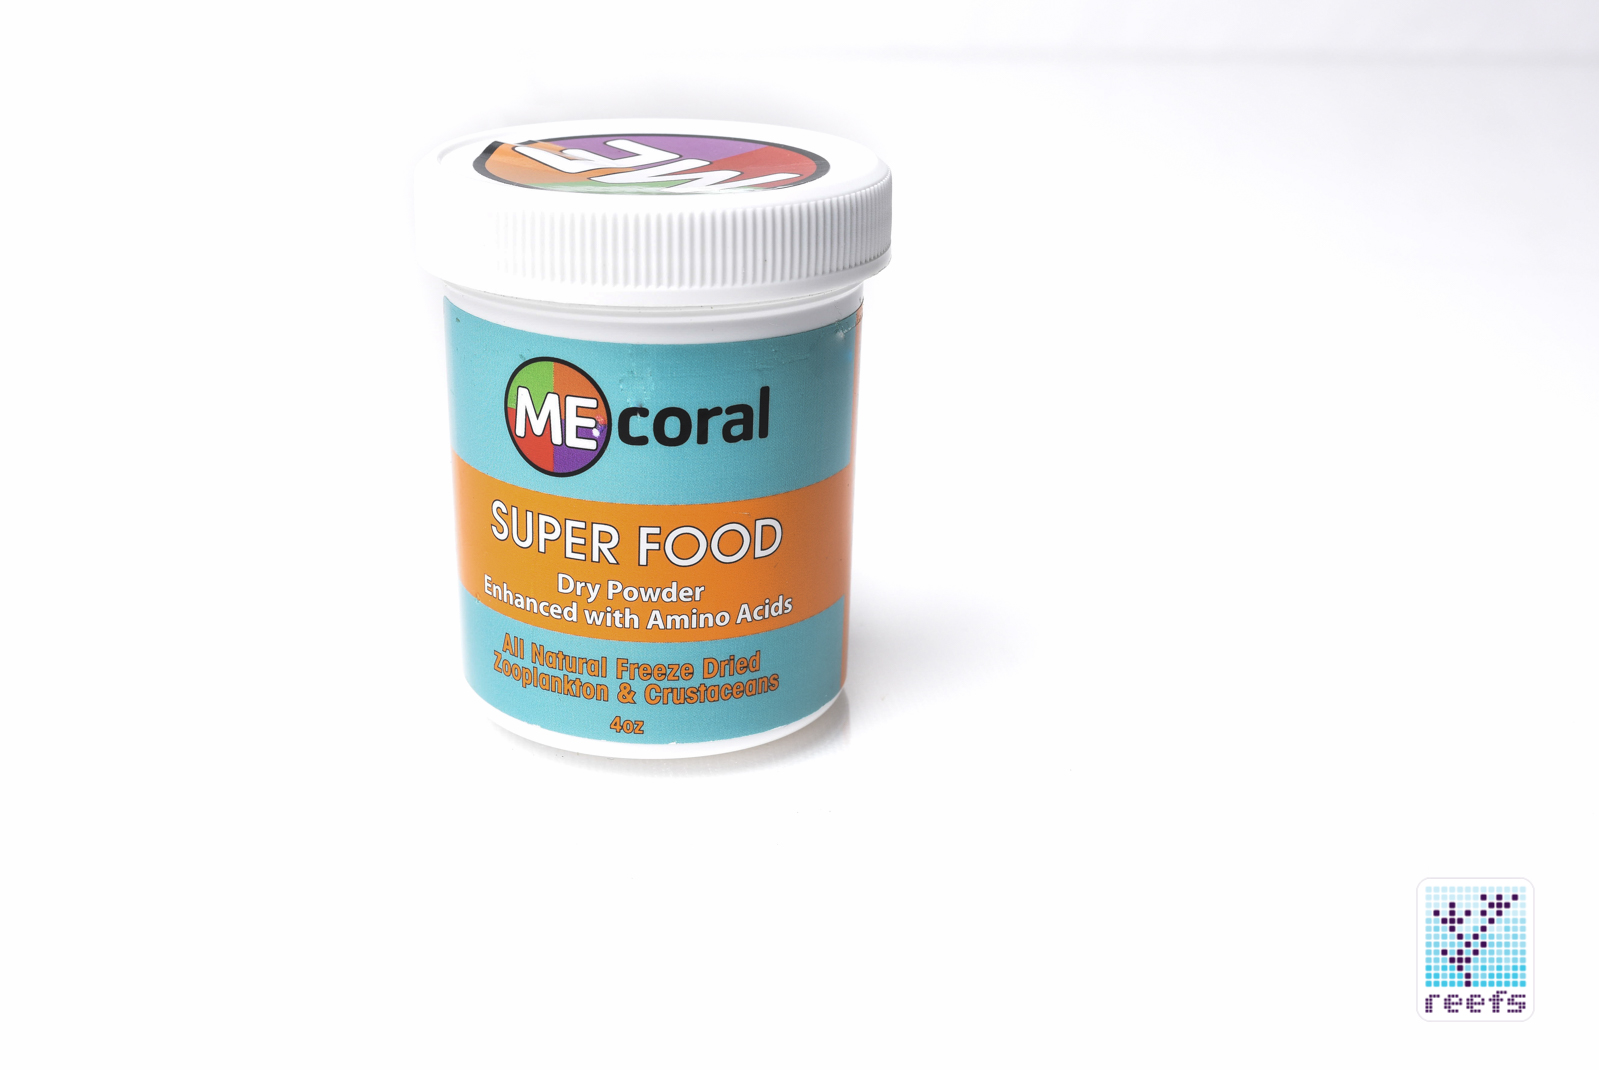 ME Coral Super Food 4oz jar